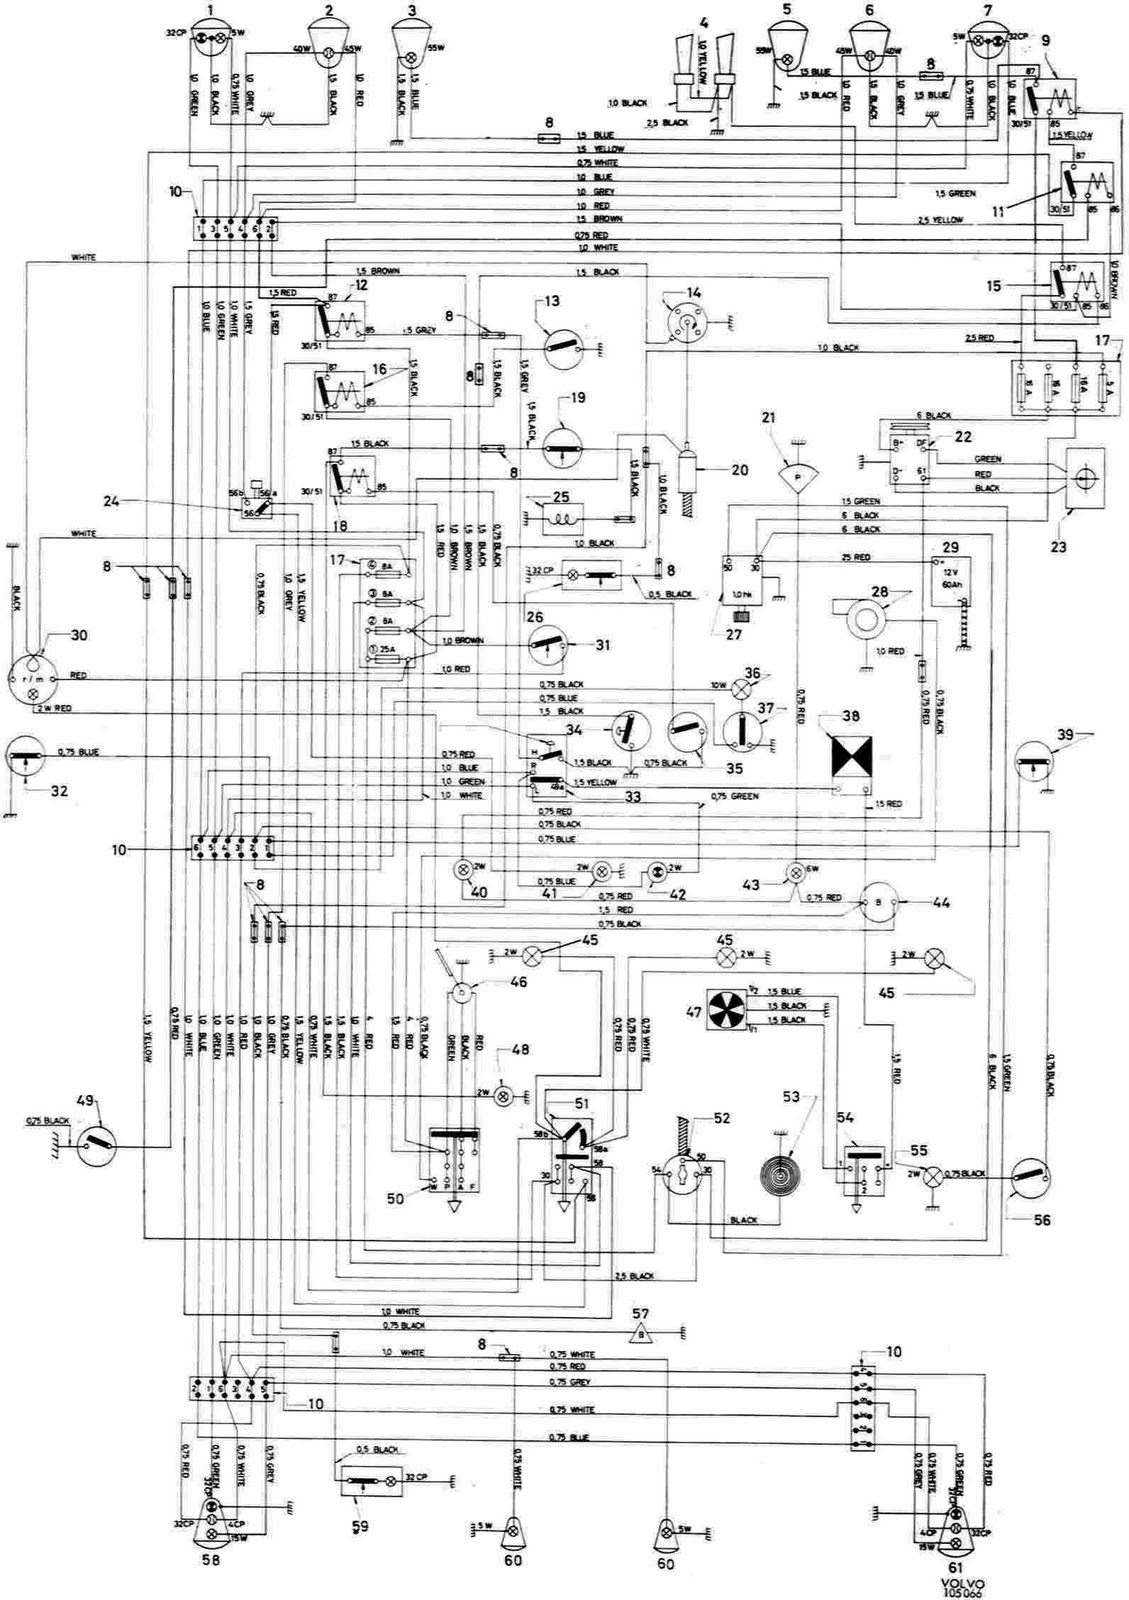 1999 Kenworth Fuse Box Diagram. Kenworth. Wiring Diagram